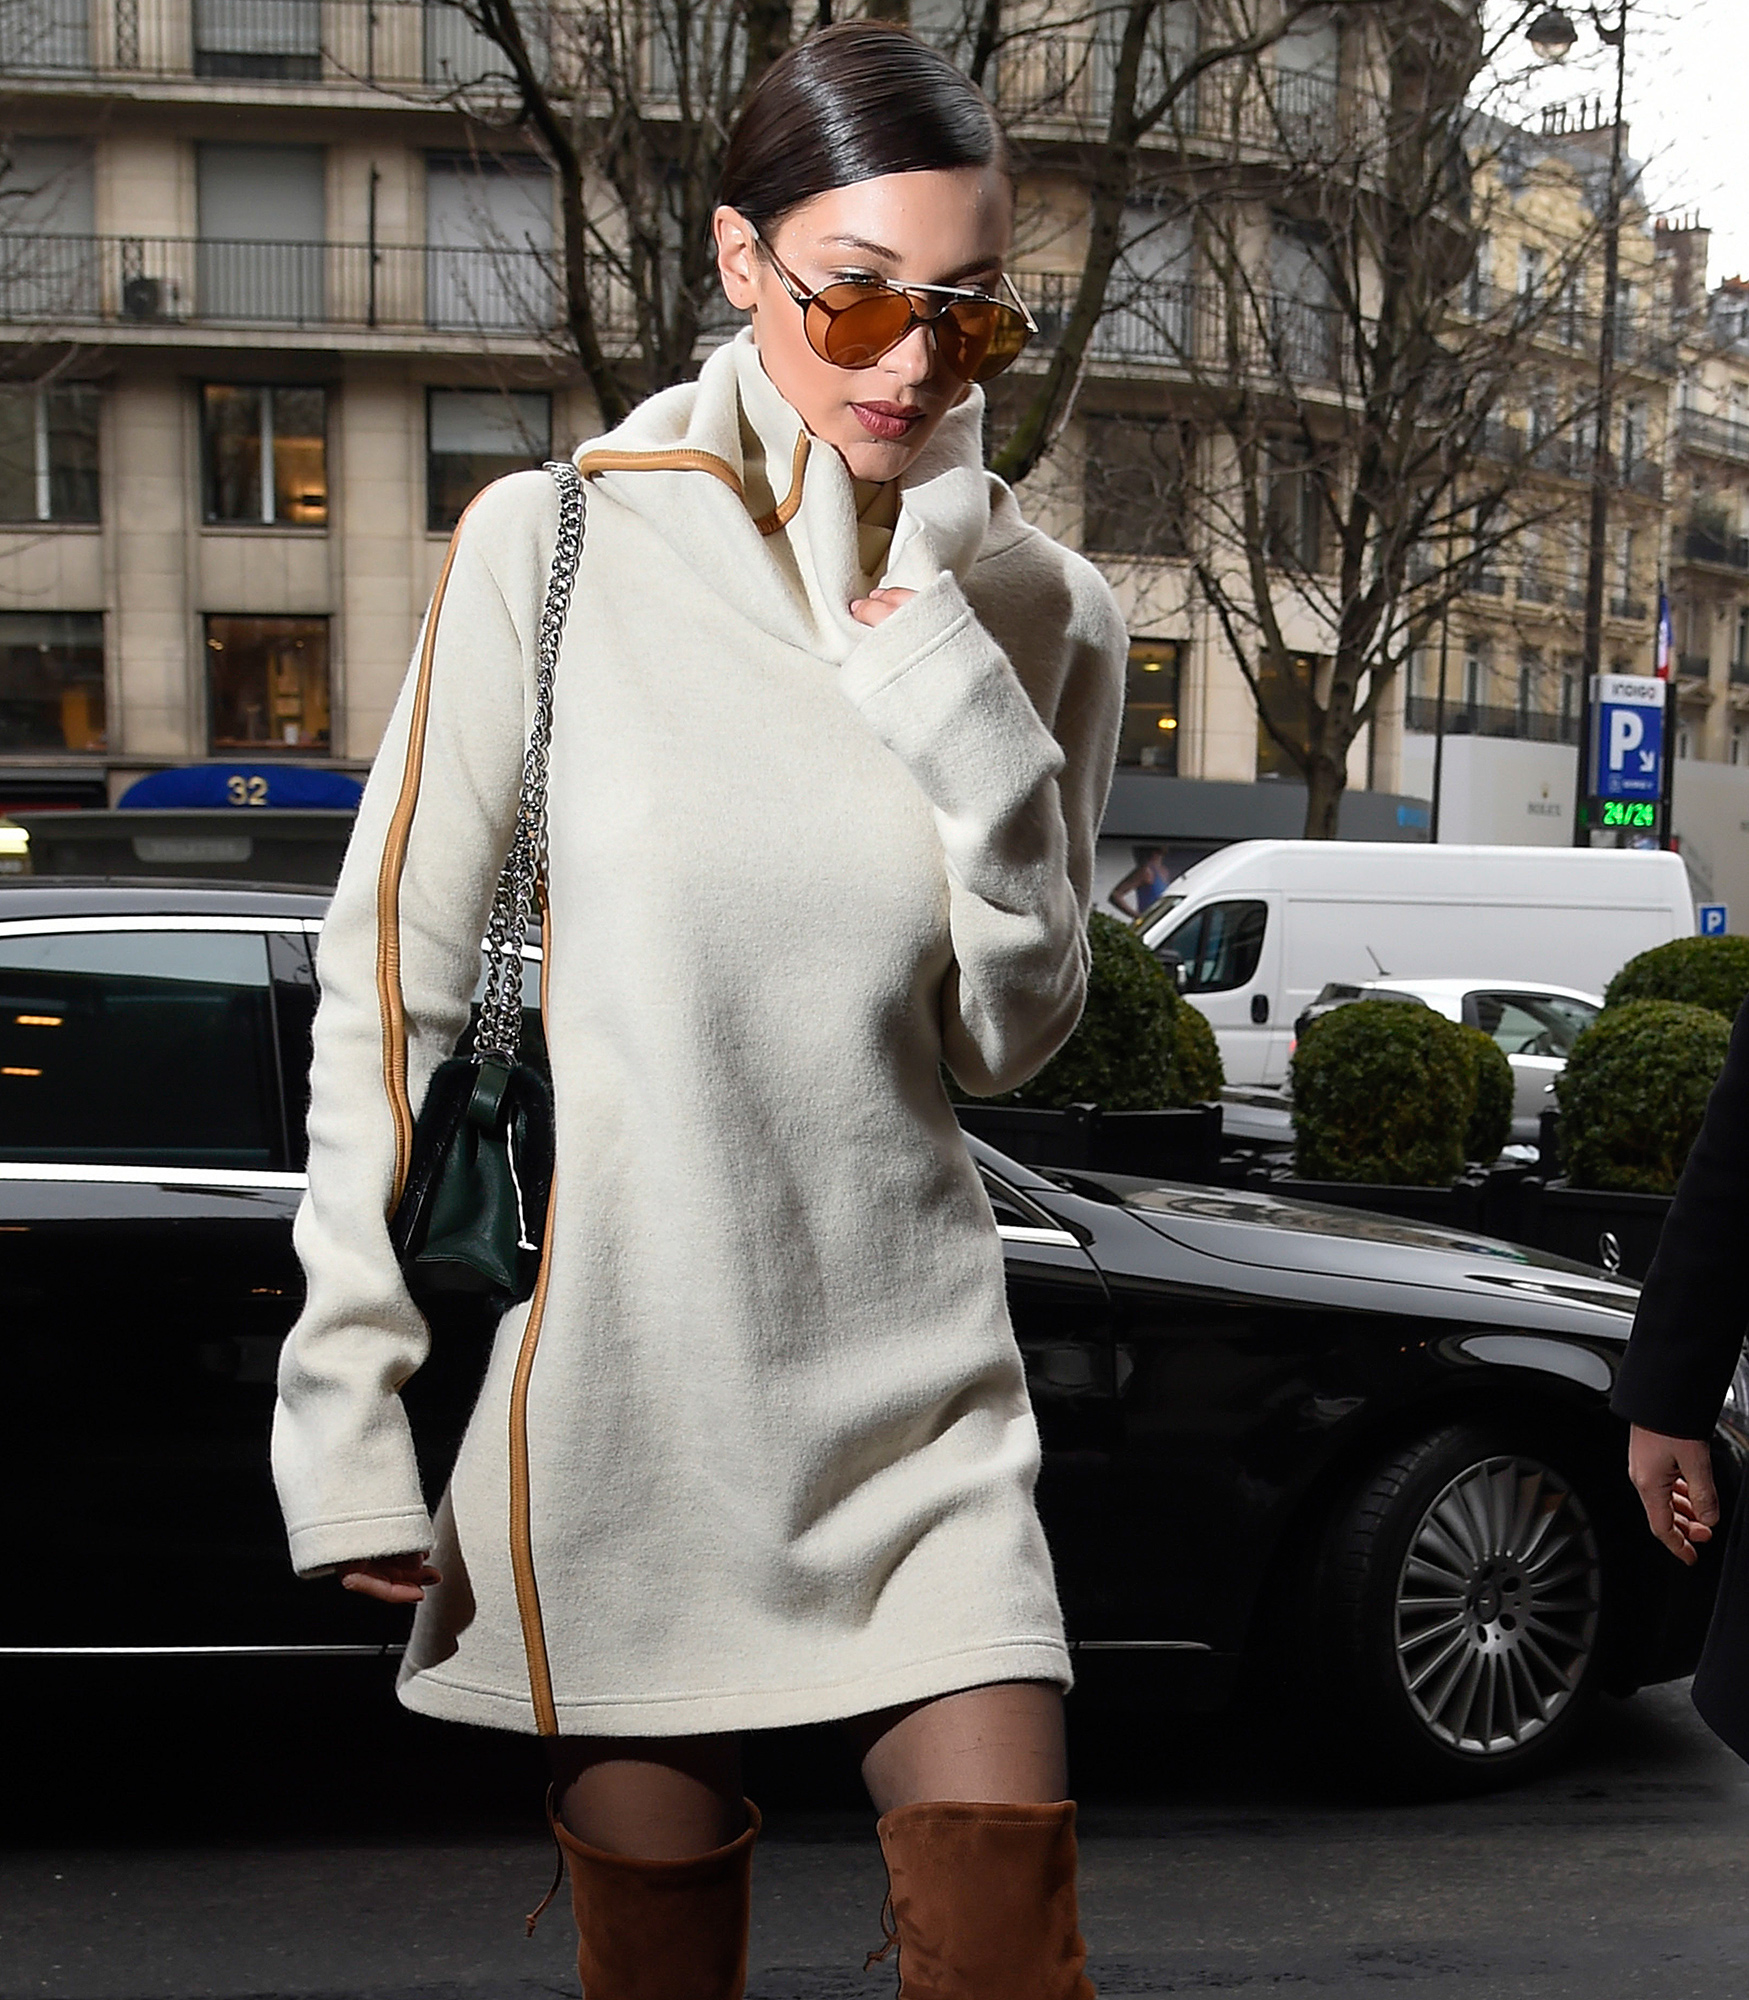 Kendall Jenner and Bella Hadid looking stylish leaving the Chanel fashion show